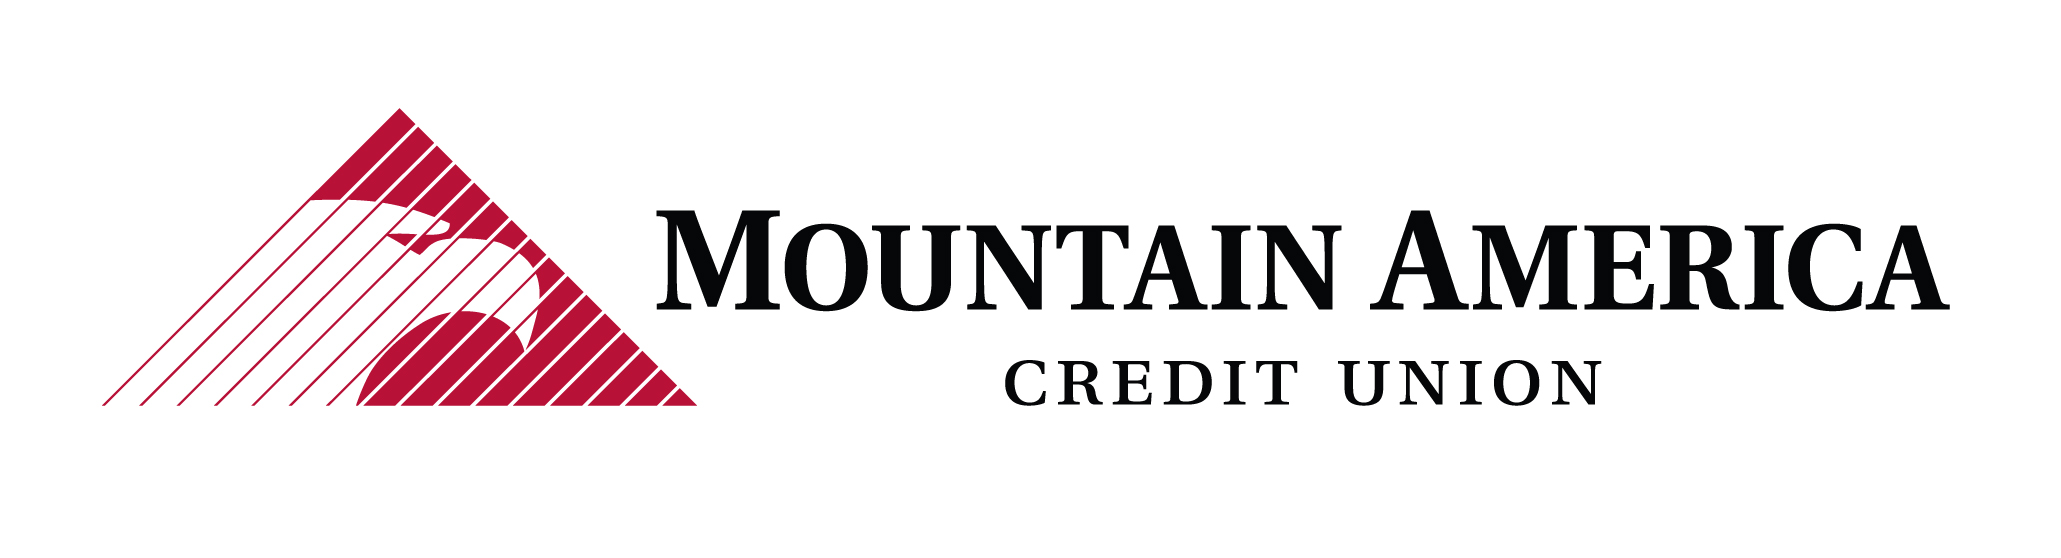 National PTA thanks Mountain America Credit Union for their generous match for this #GivingTuesday!